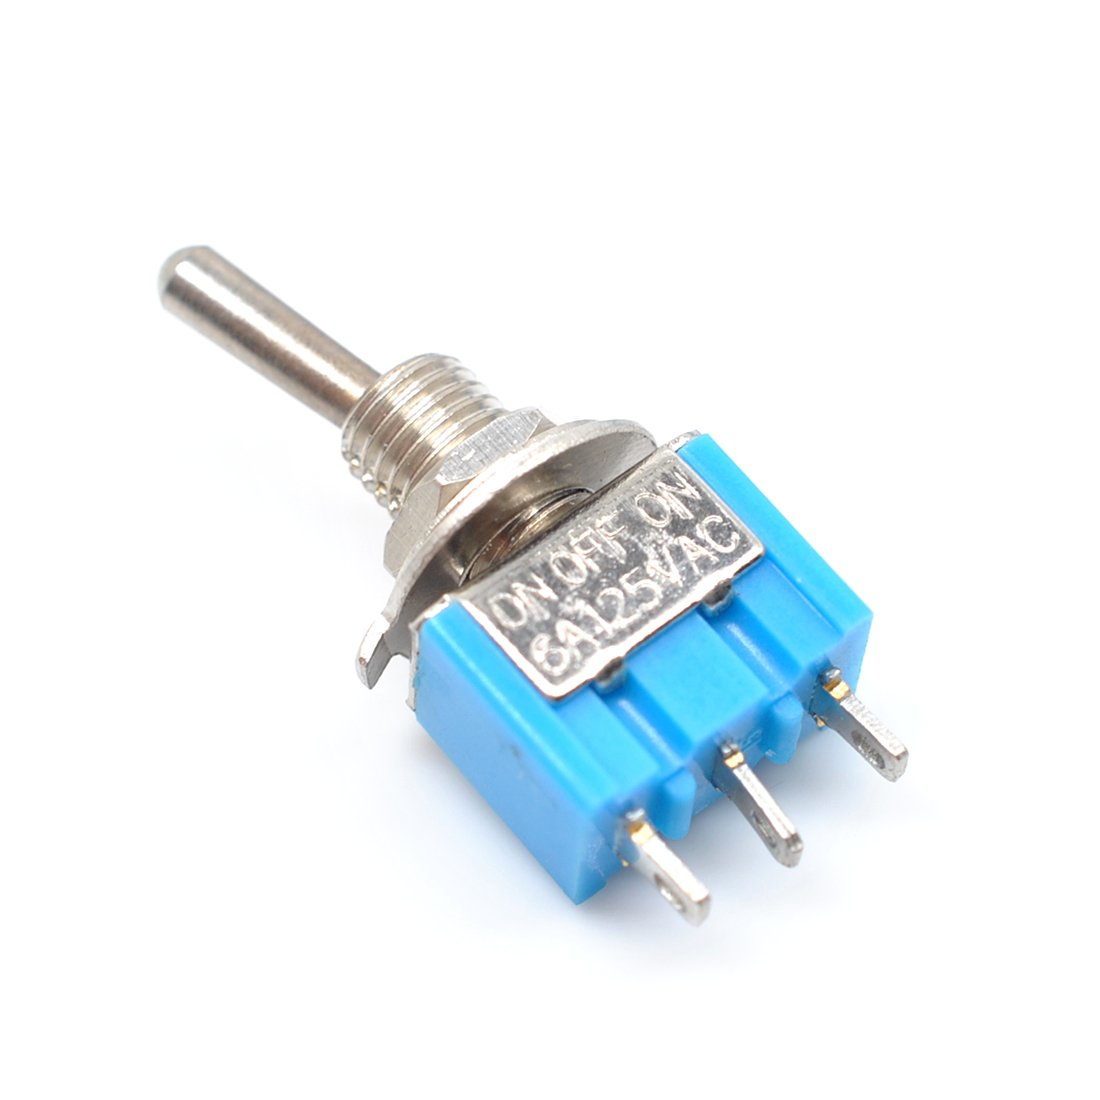 Red Willwin 10 pcs Mts-103 SPDT ON-OFF-ON 3 Pin Latching Miniature Toggle Switch AC125V 6A